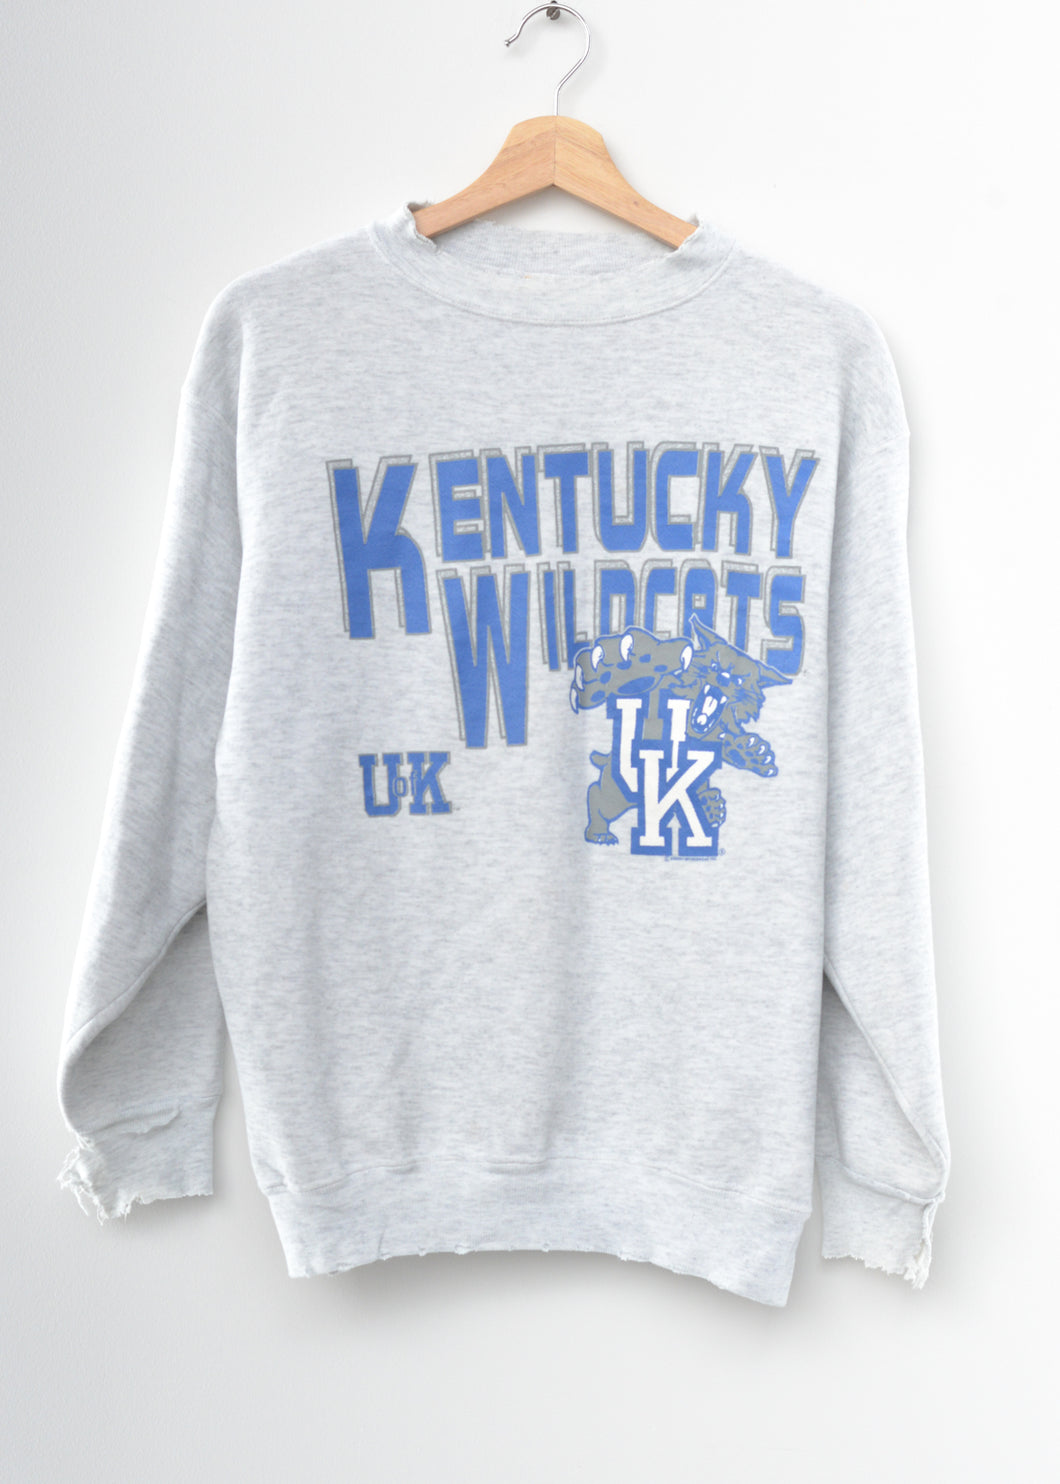 Kentucky Wildcats Sweatshirt